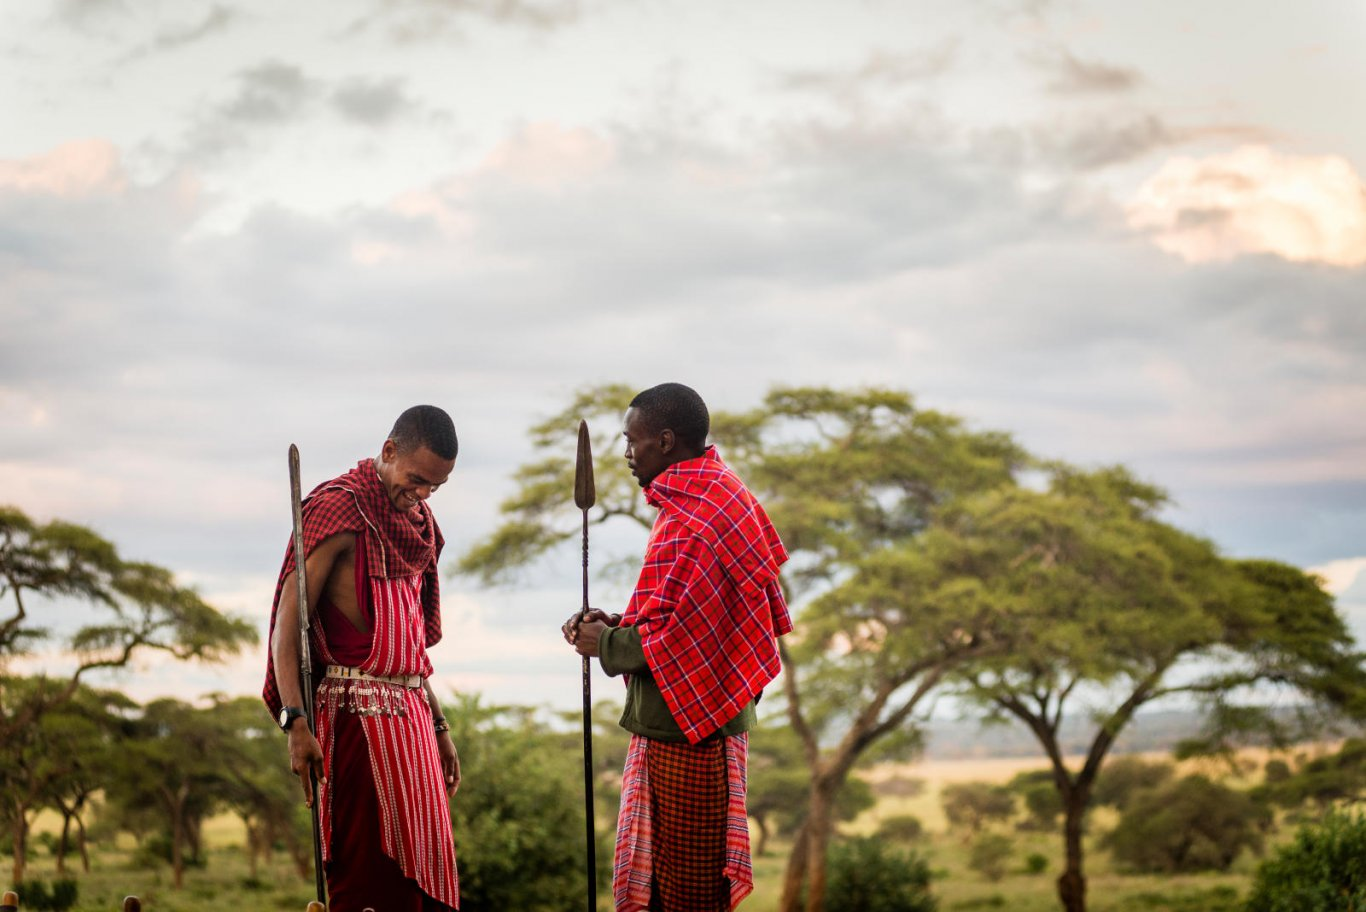 6 DAY TANZANIA GREAT CULTURAL TOURISM SAFARI